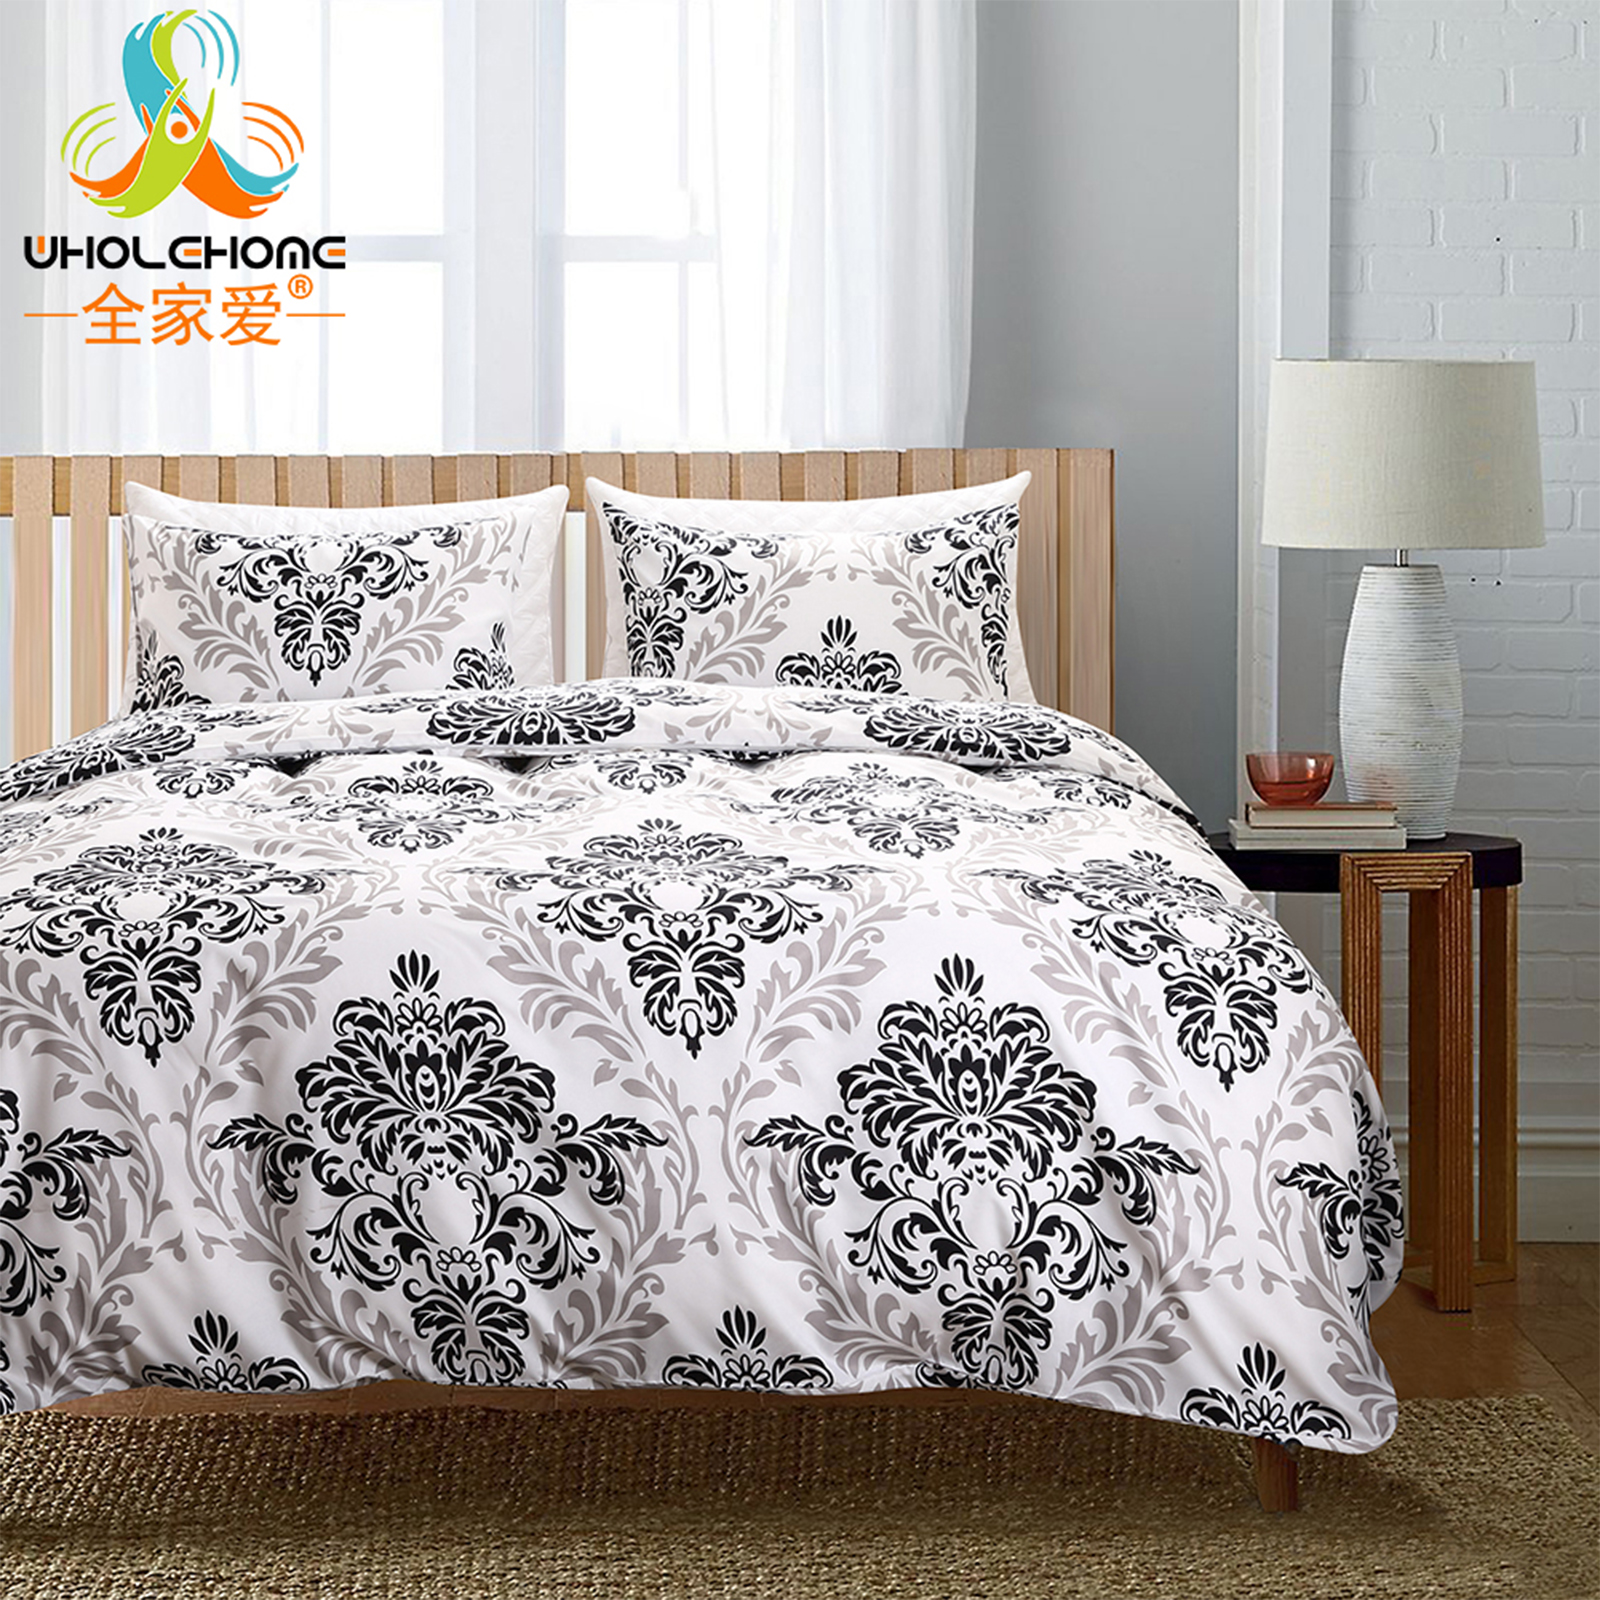 luxury bedding set duvet black and white color baroque decorative bed cover set twin queen king. Black Bedroom Furniture Sets. Home Design Ideas